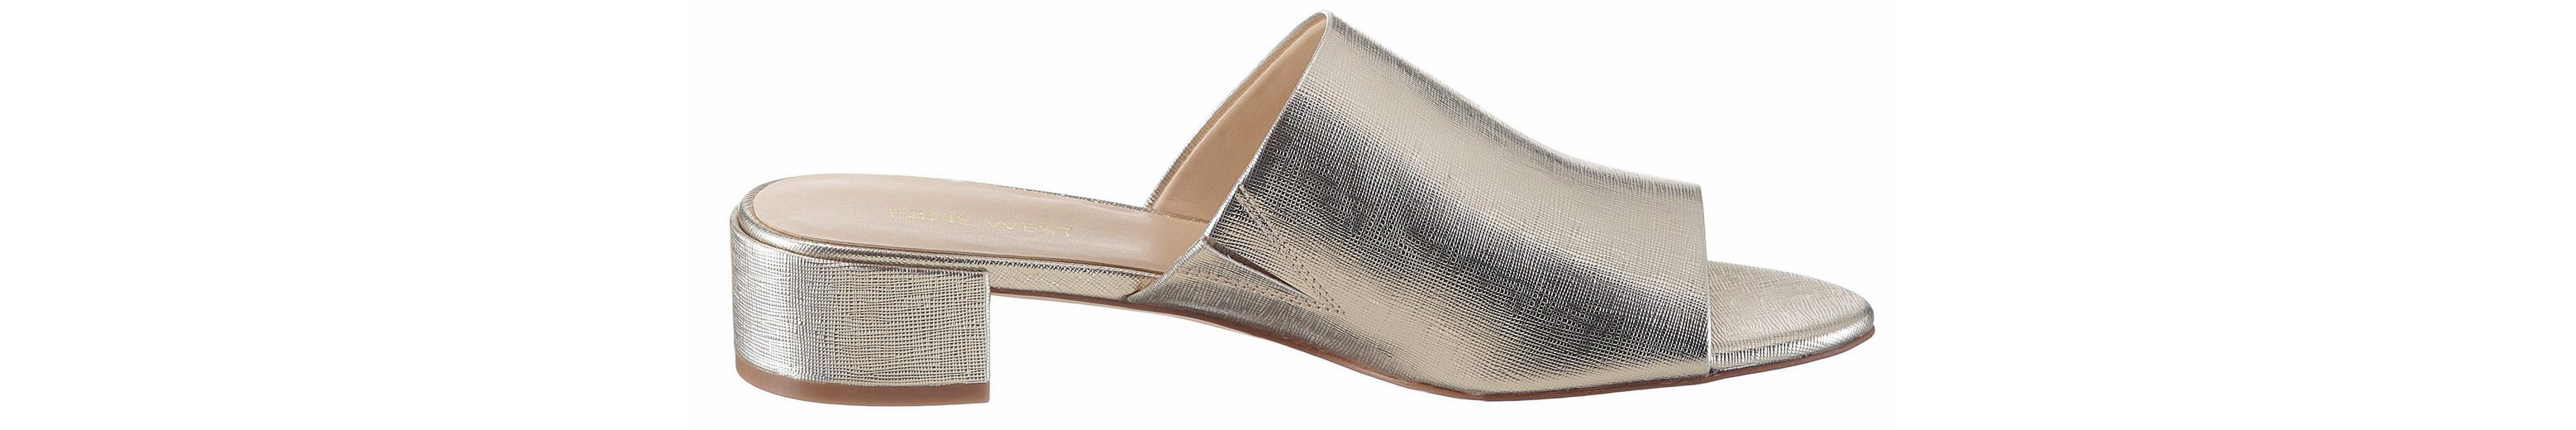 Nine West Raissa3 Pantolette, im trendigen Metallic-Look